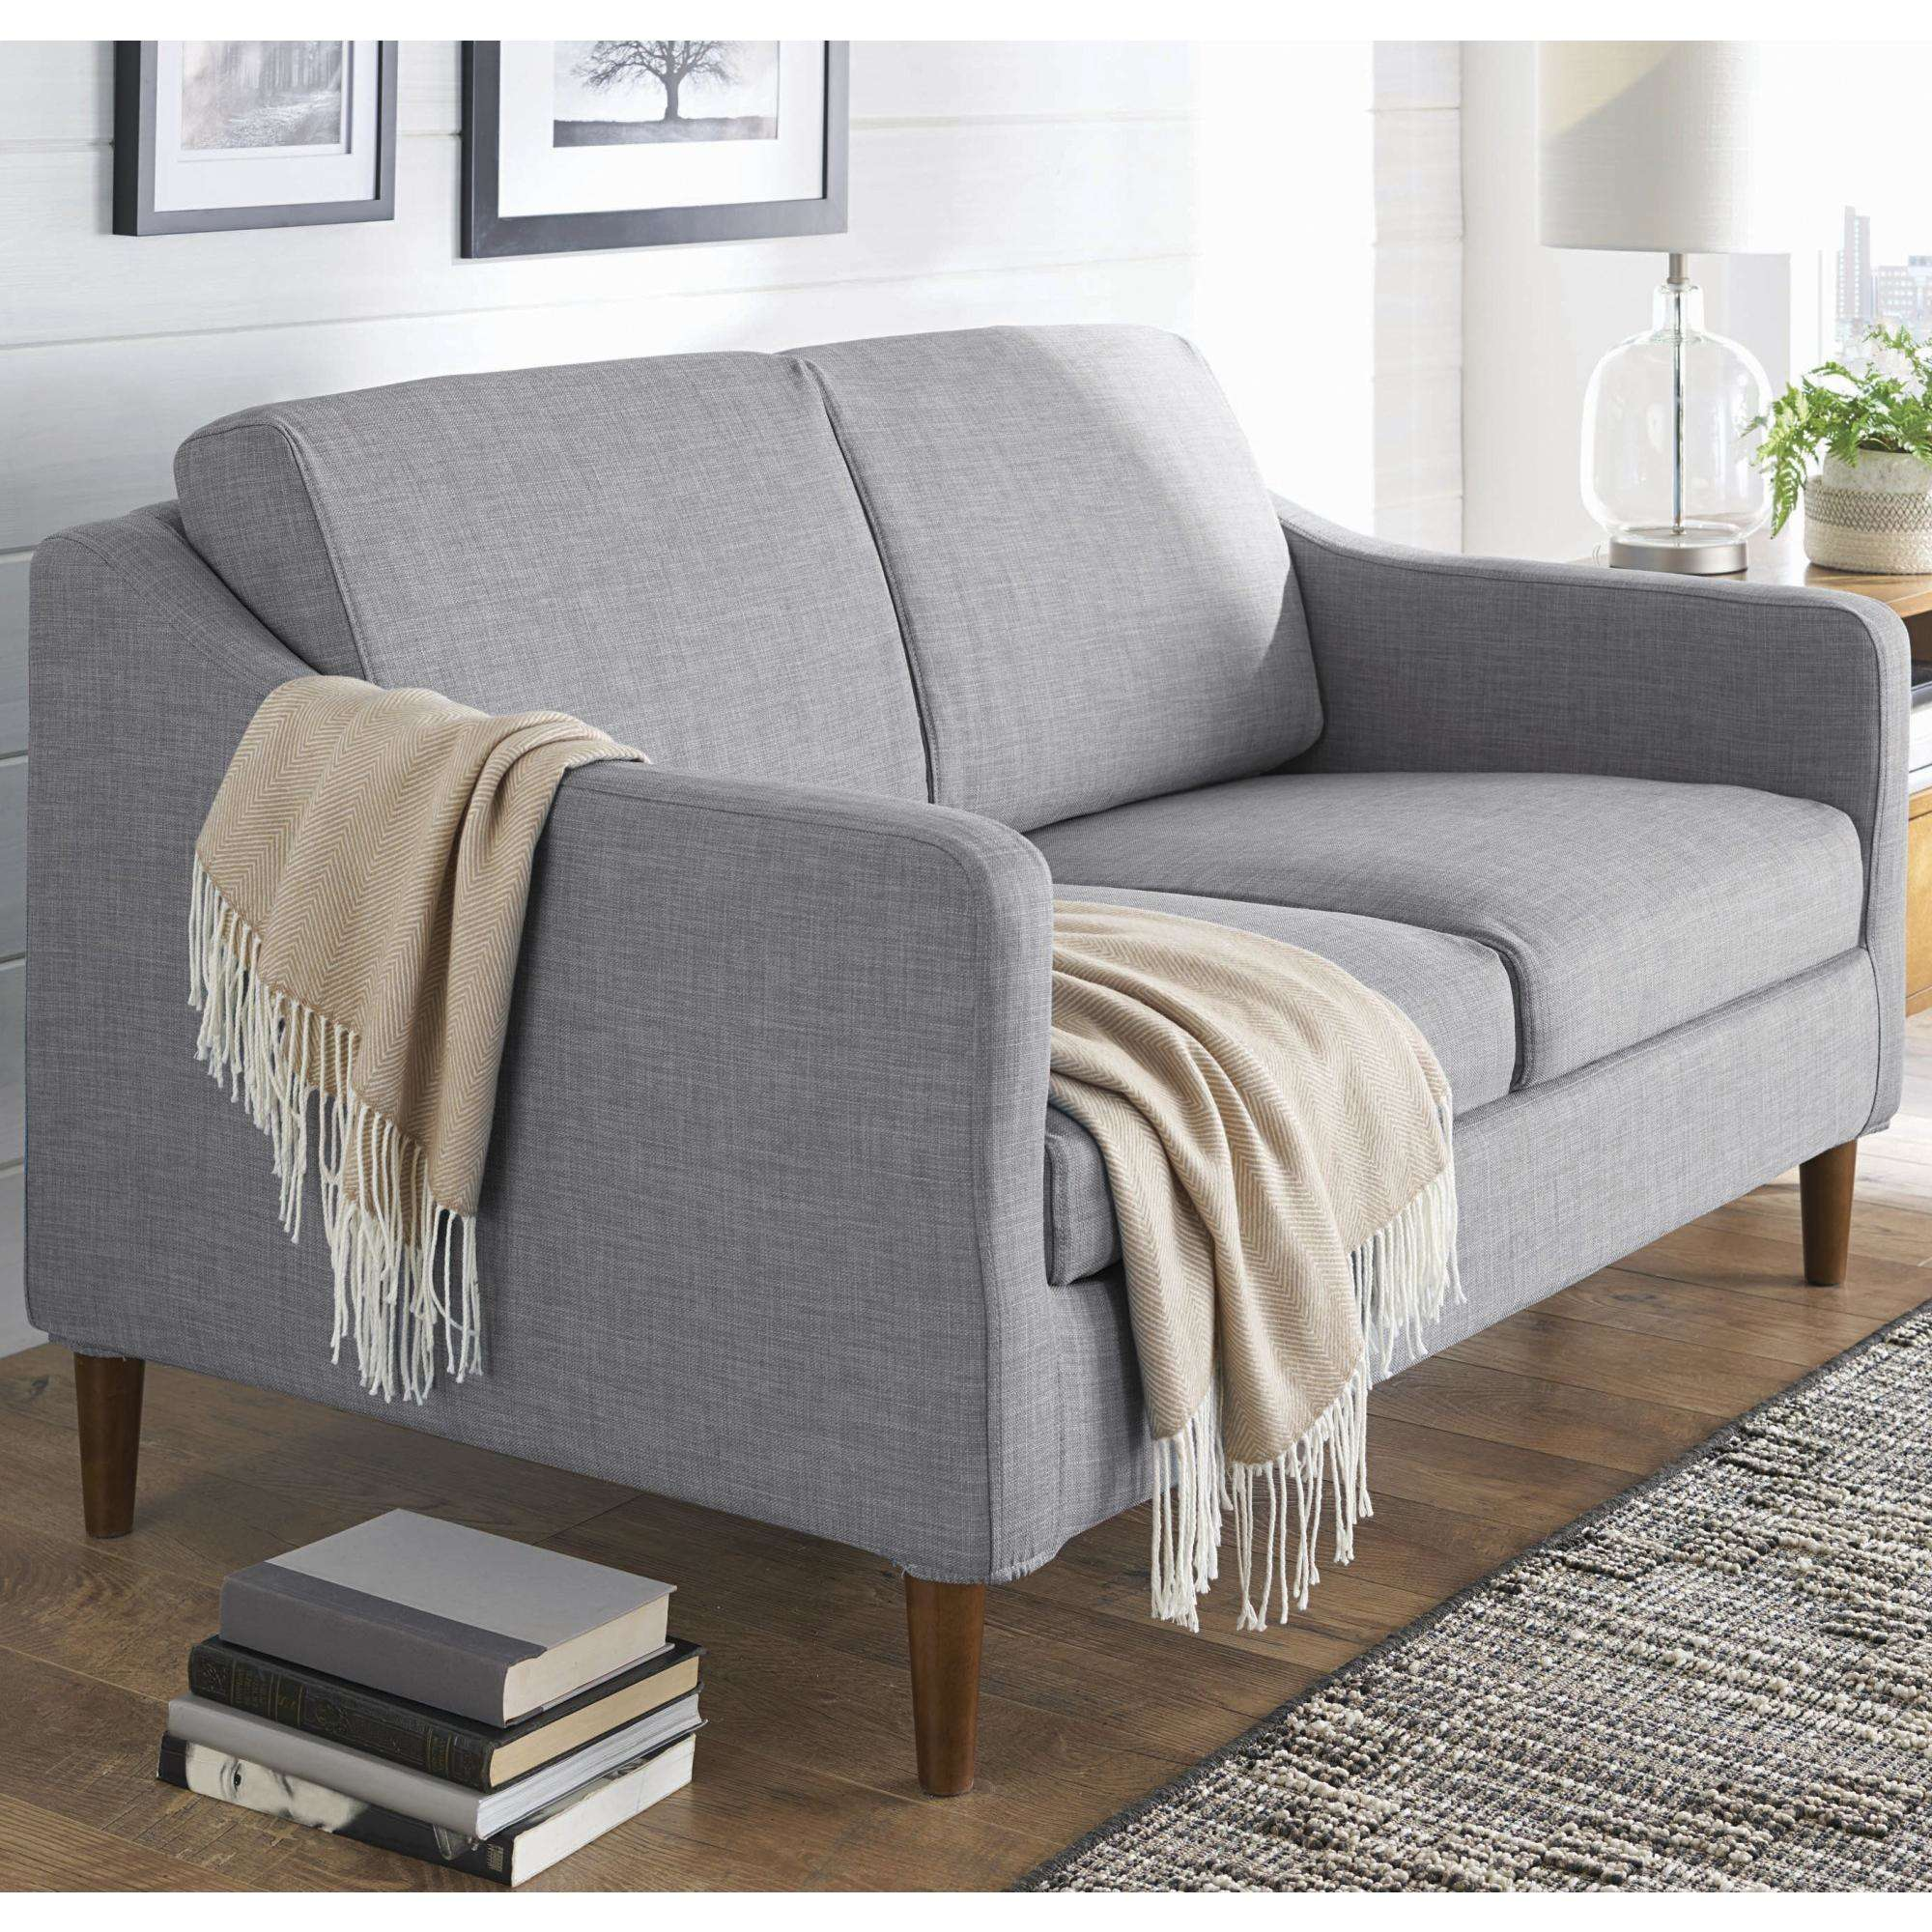 """Better Homes and Gardens 55"""" Griffin Loveseat, Multiple Colors by Dwell Home Inc."""